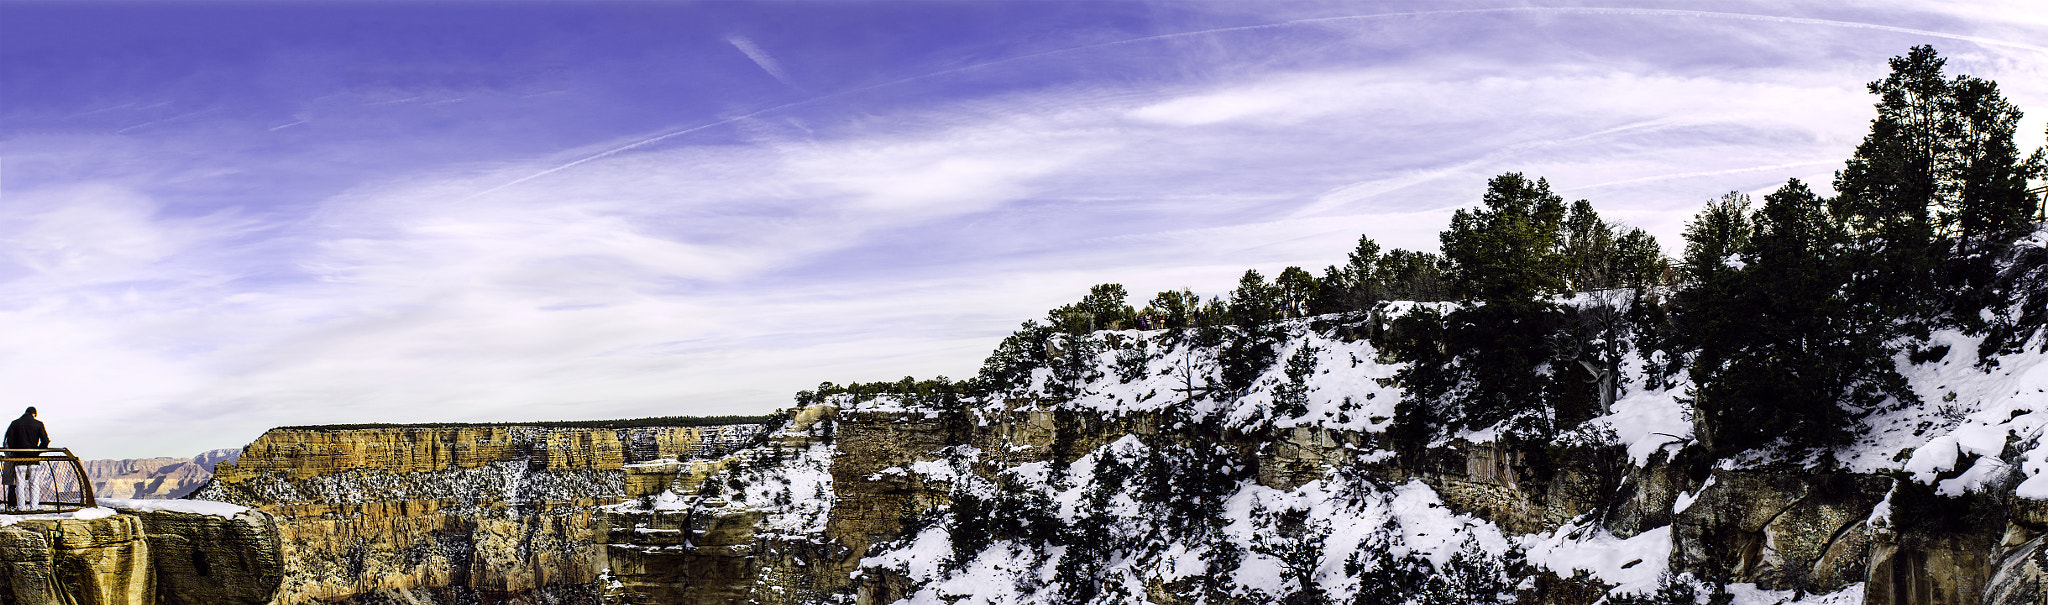 Photograph Grand Canyon South Rim Panoramic 1 by Rommel Mendoza on 500px